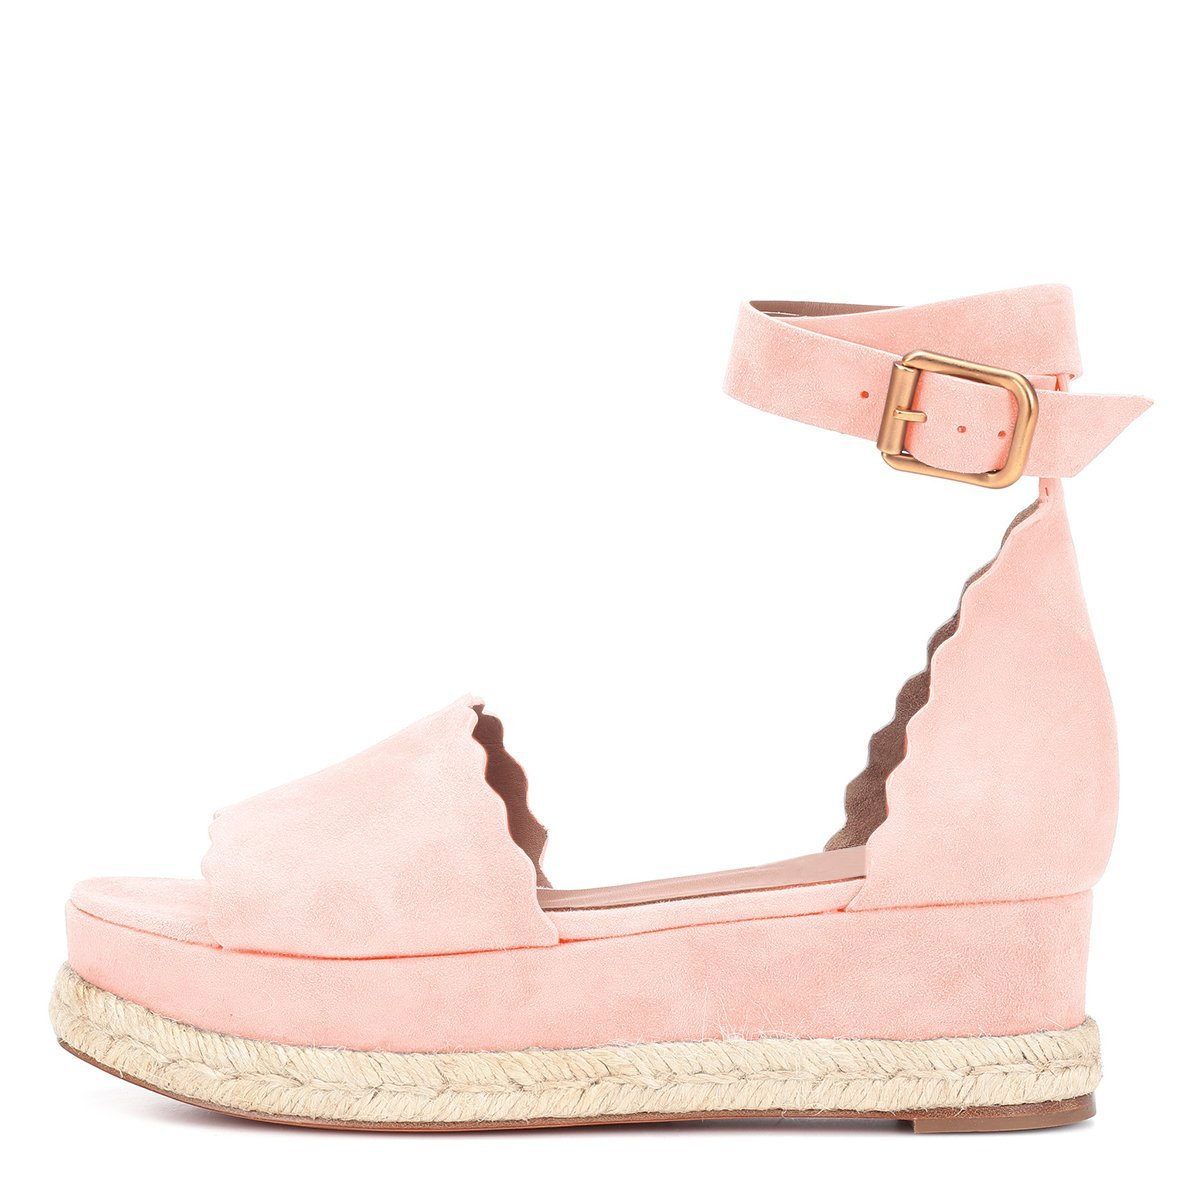 YDN Women Straps Espadrille Peep Toe Ankle Straps Women Wedge Sandals Low Heels Platform Shoes with Buckle B07G2FFRP4 5 M US|Pink c29f92